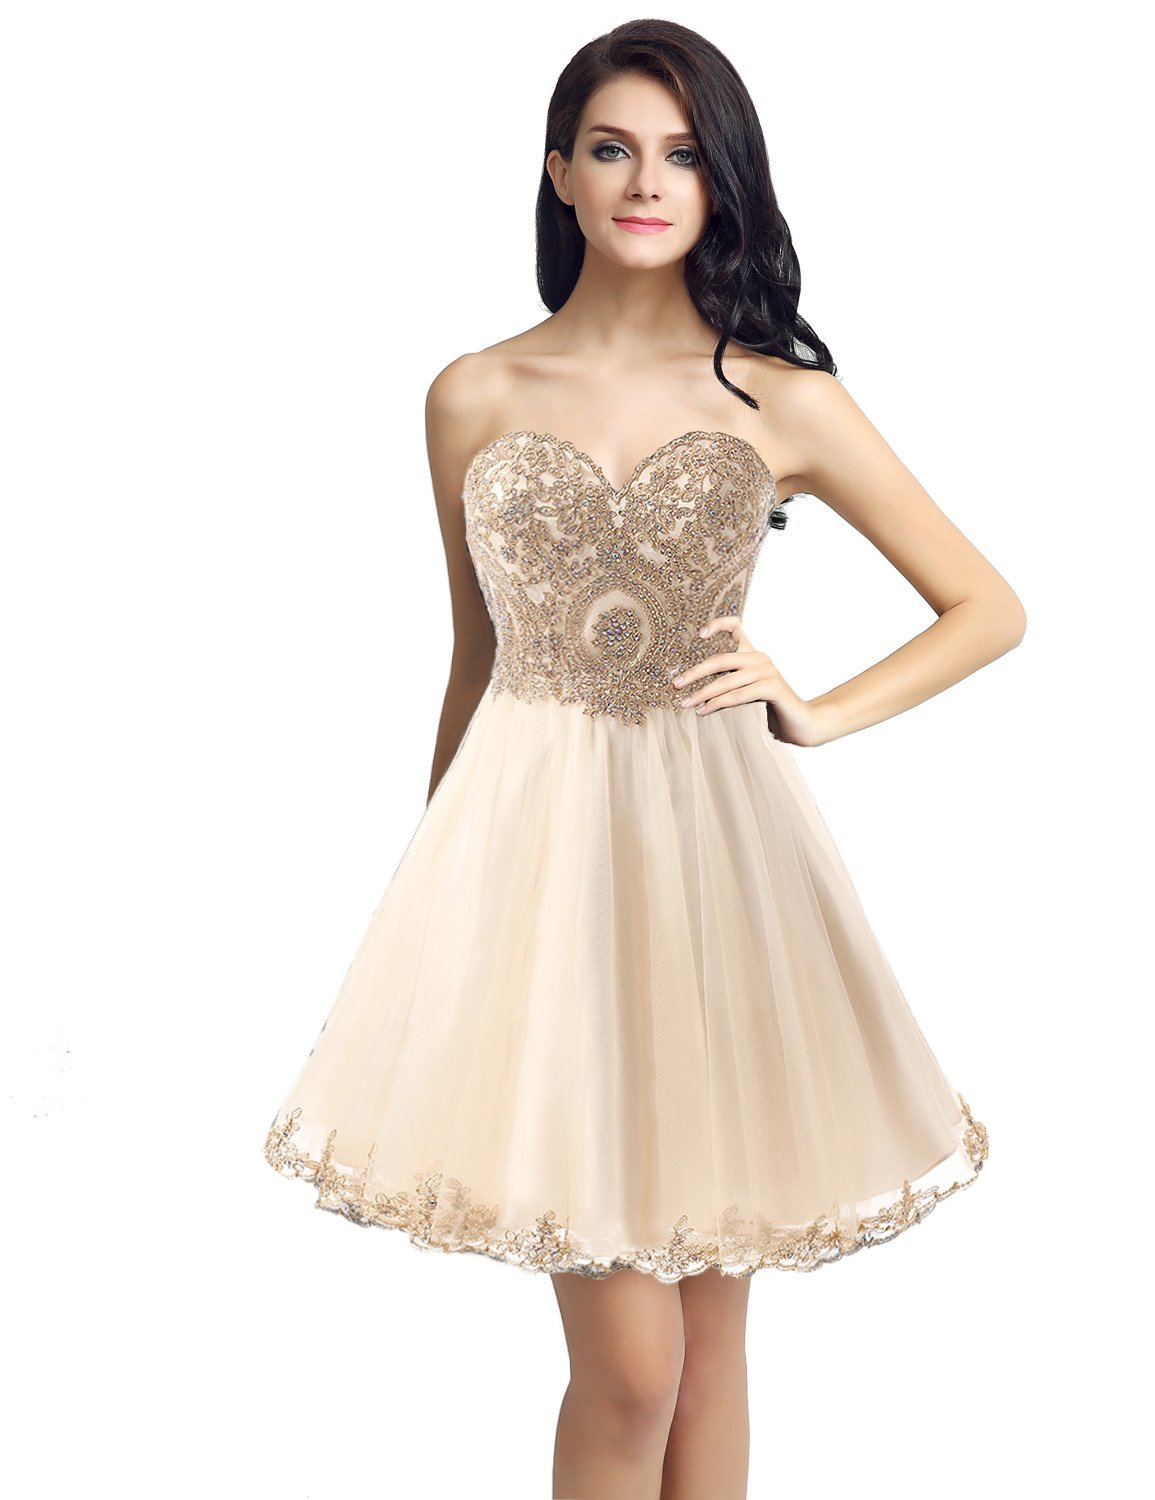 Prom Dress In Ivory and Gold: Amazon.com